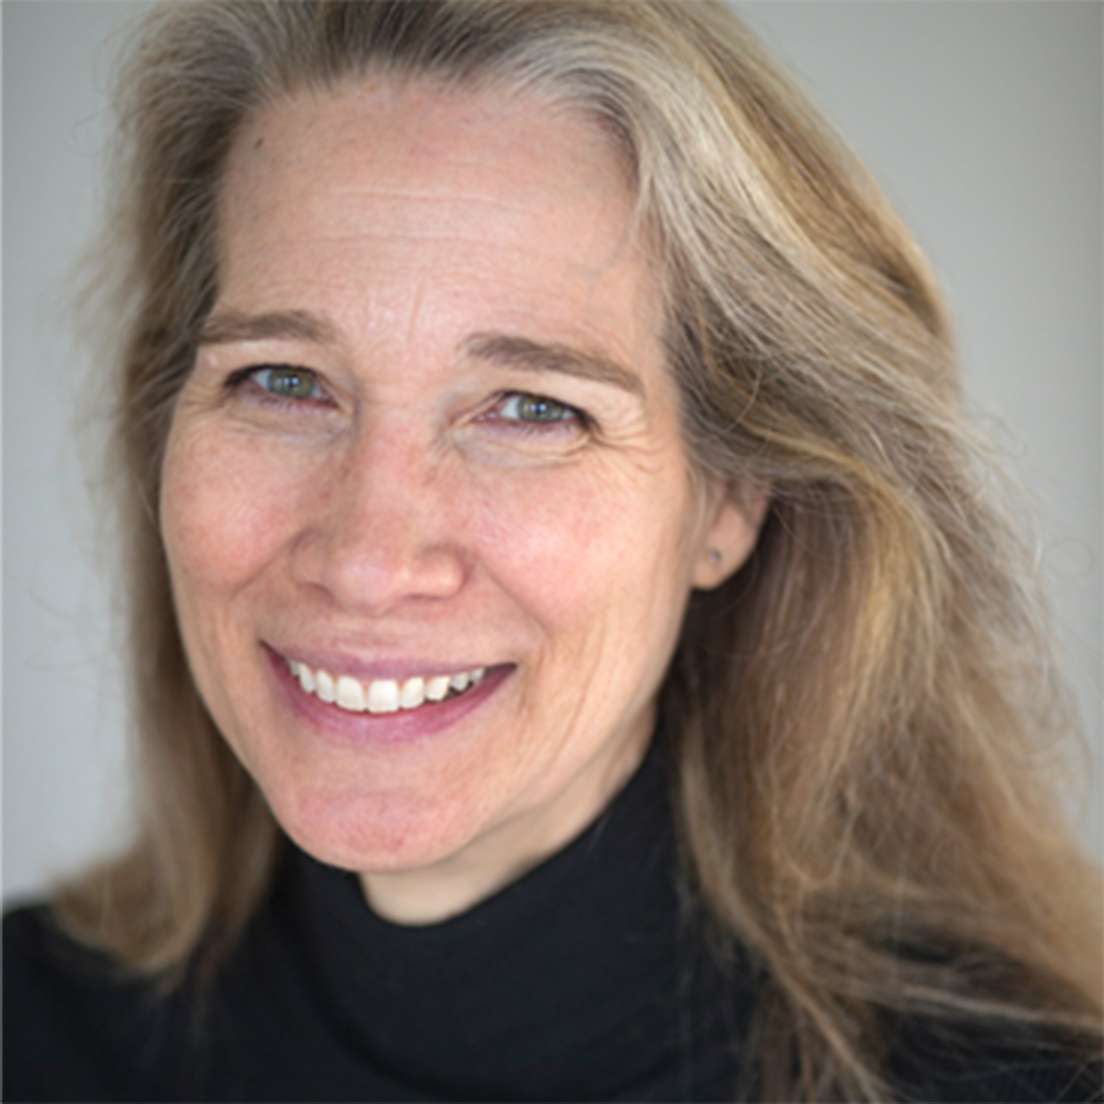 Photograph of Lucinda Duncalfe, Founder and CEO of AboveBoard.